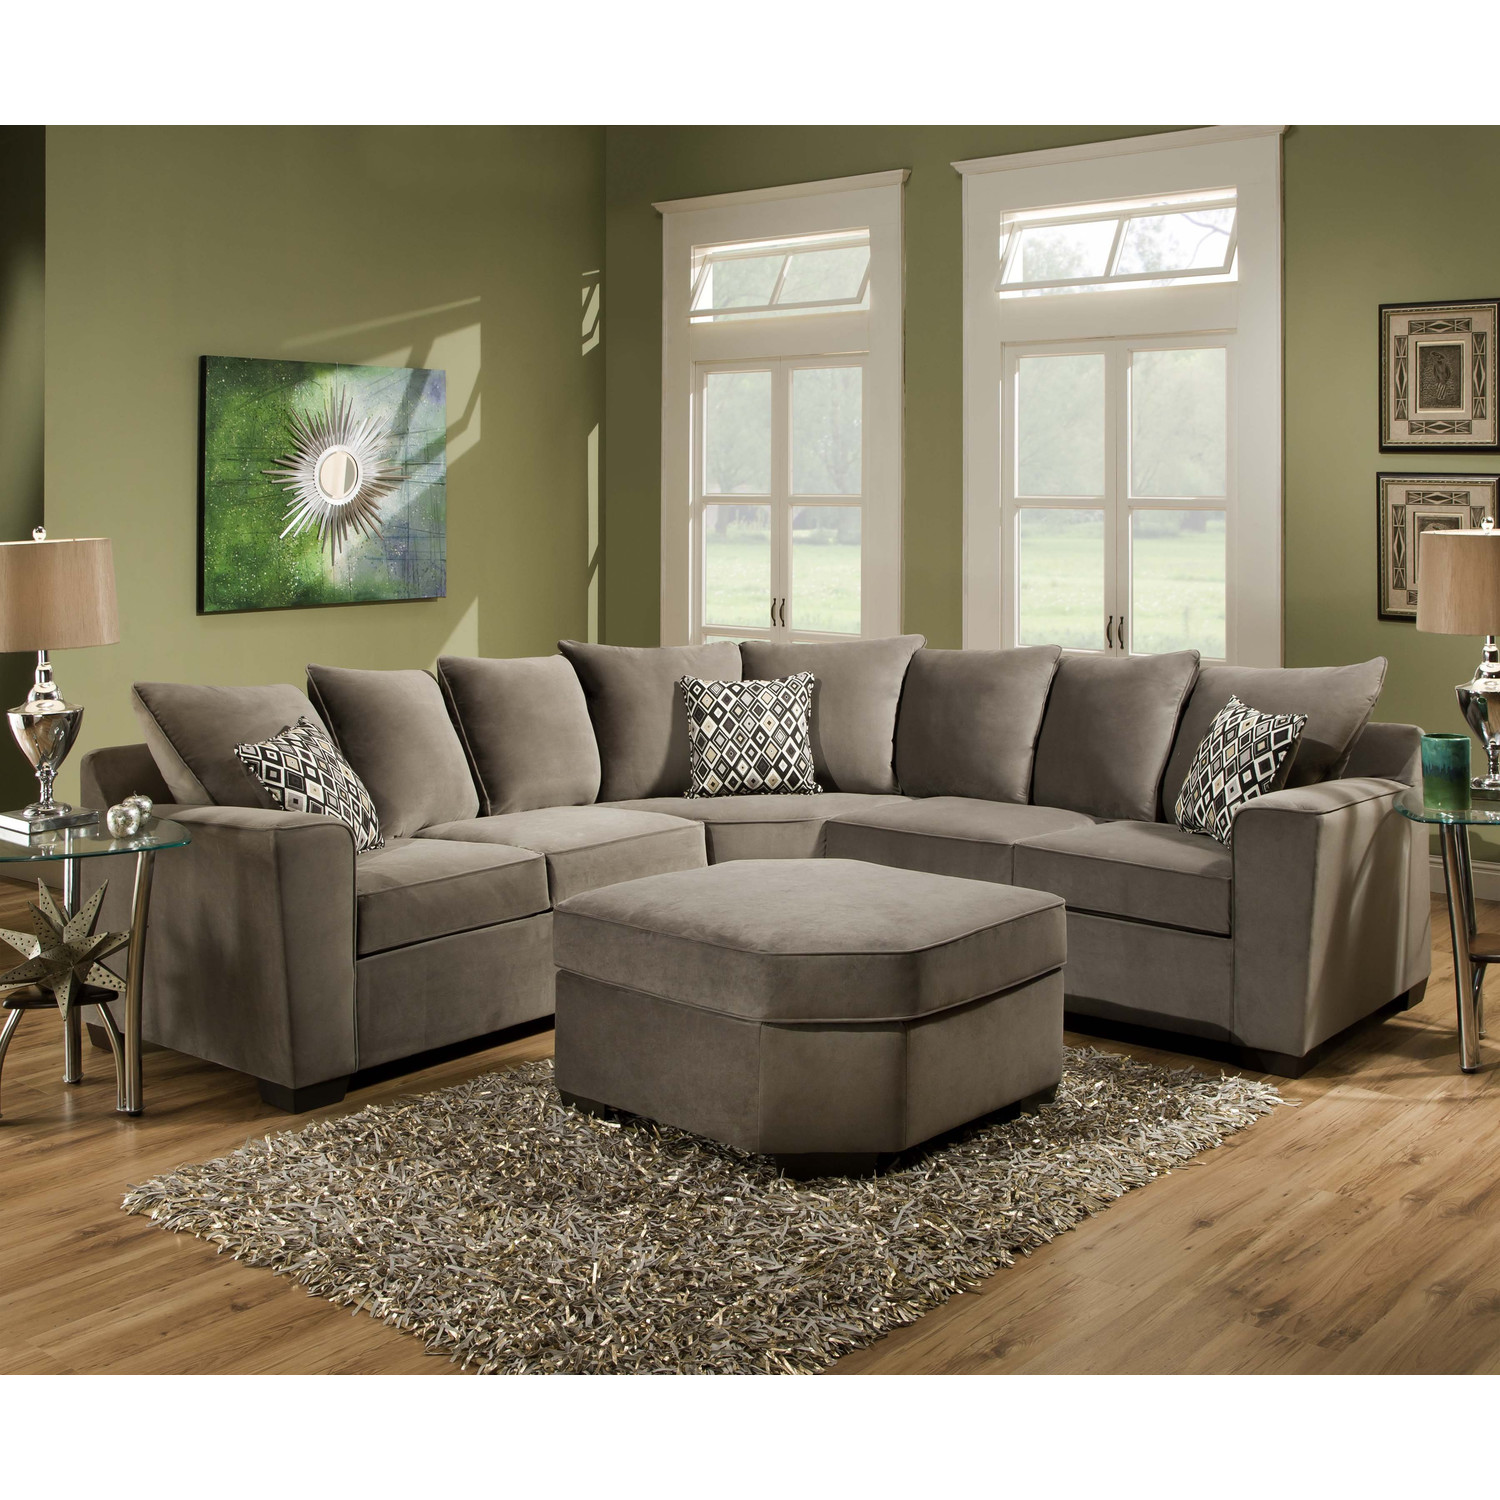 large sectional sofas extra large sectional sofa large deep sectional sofas